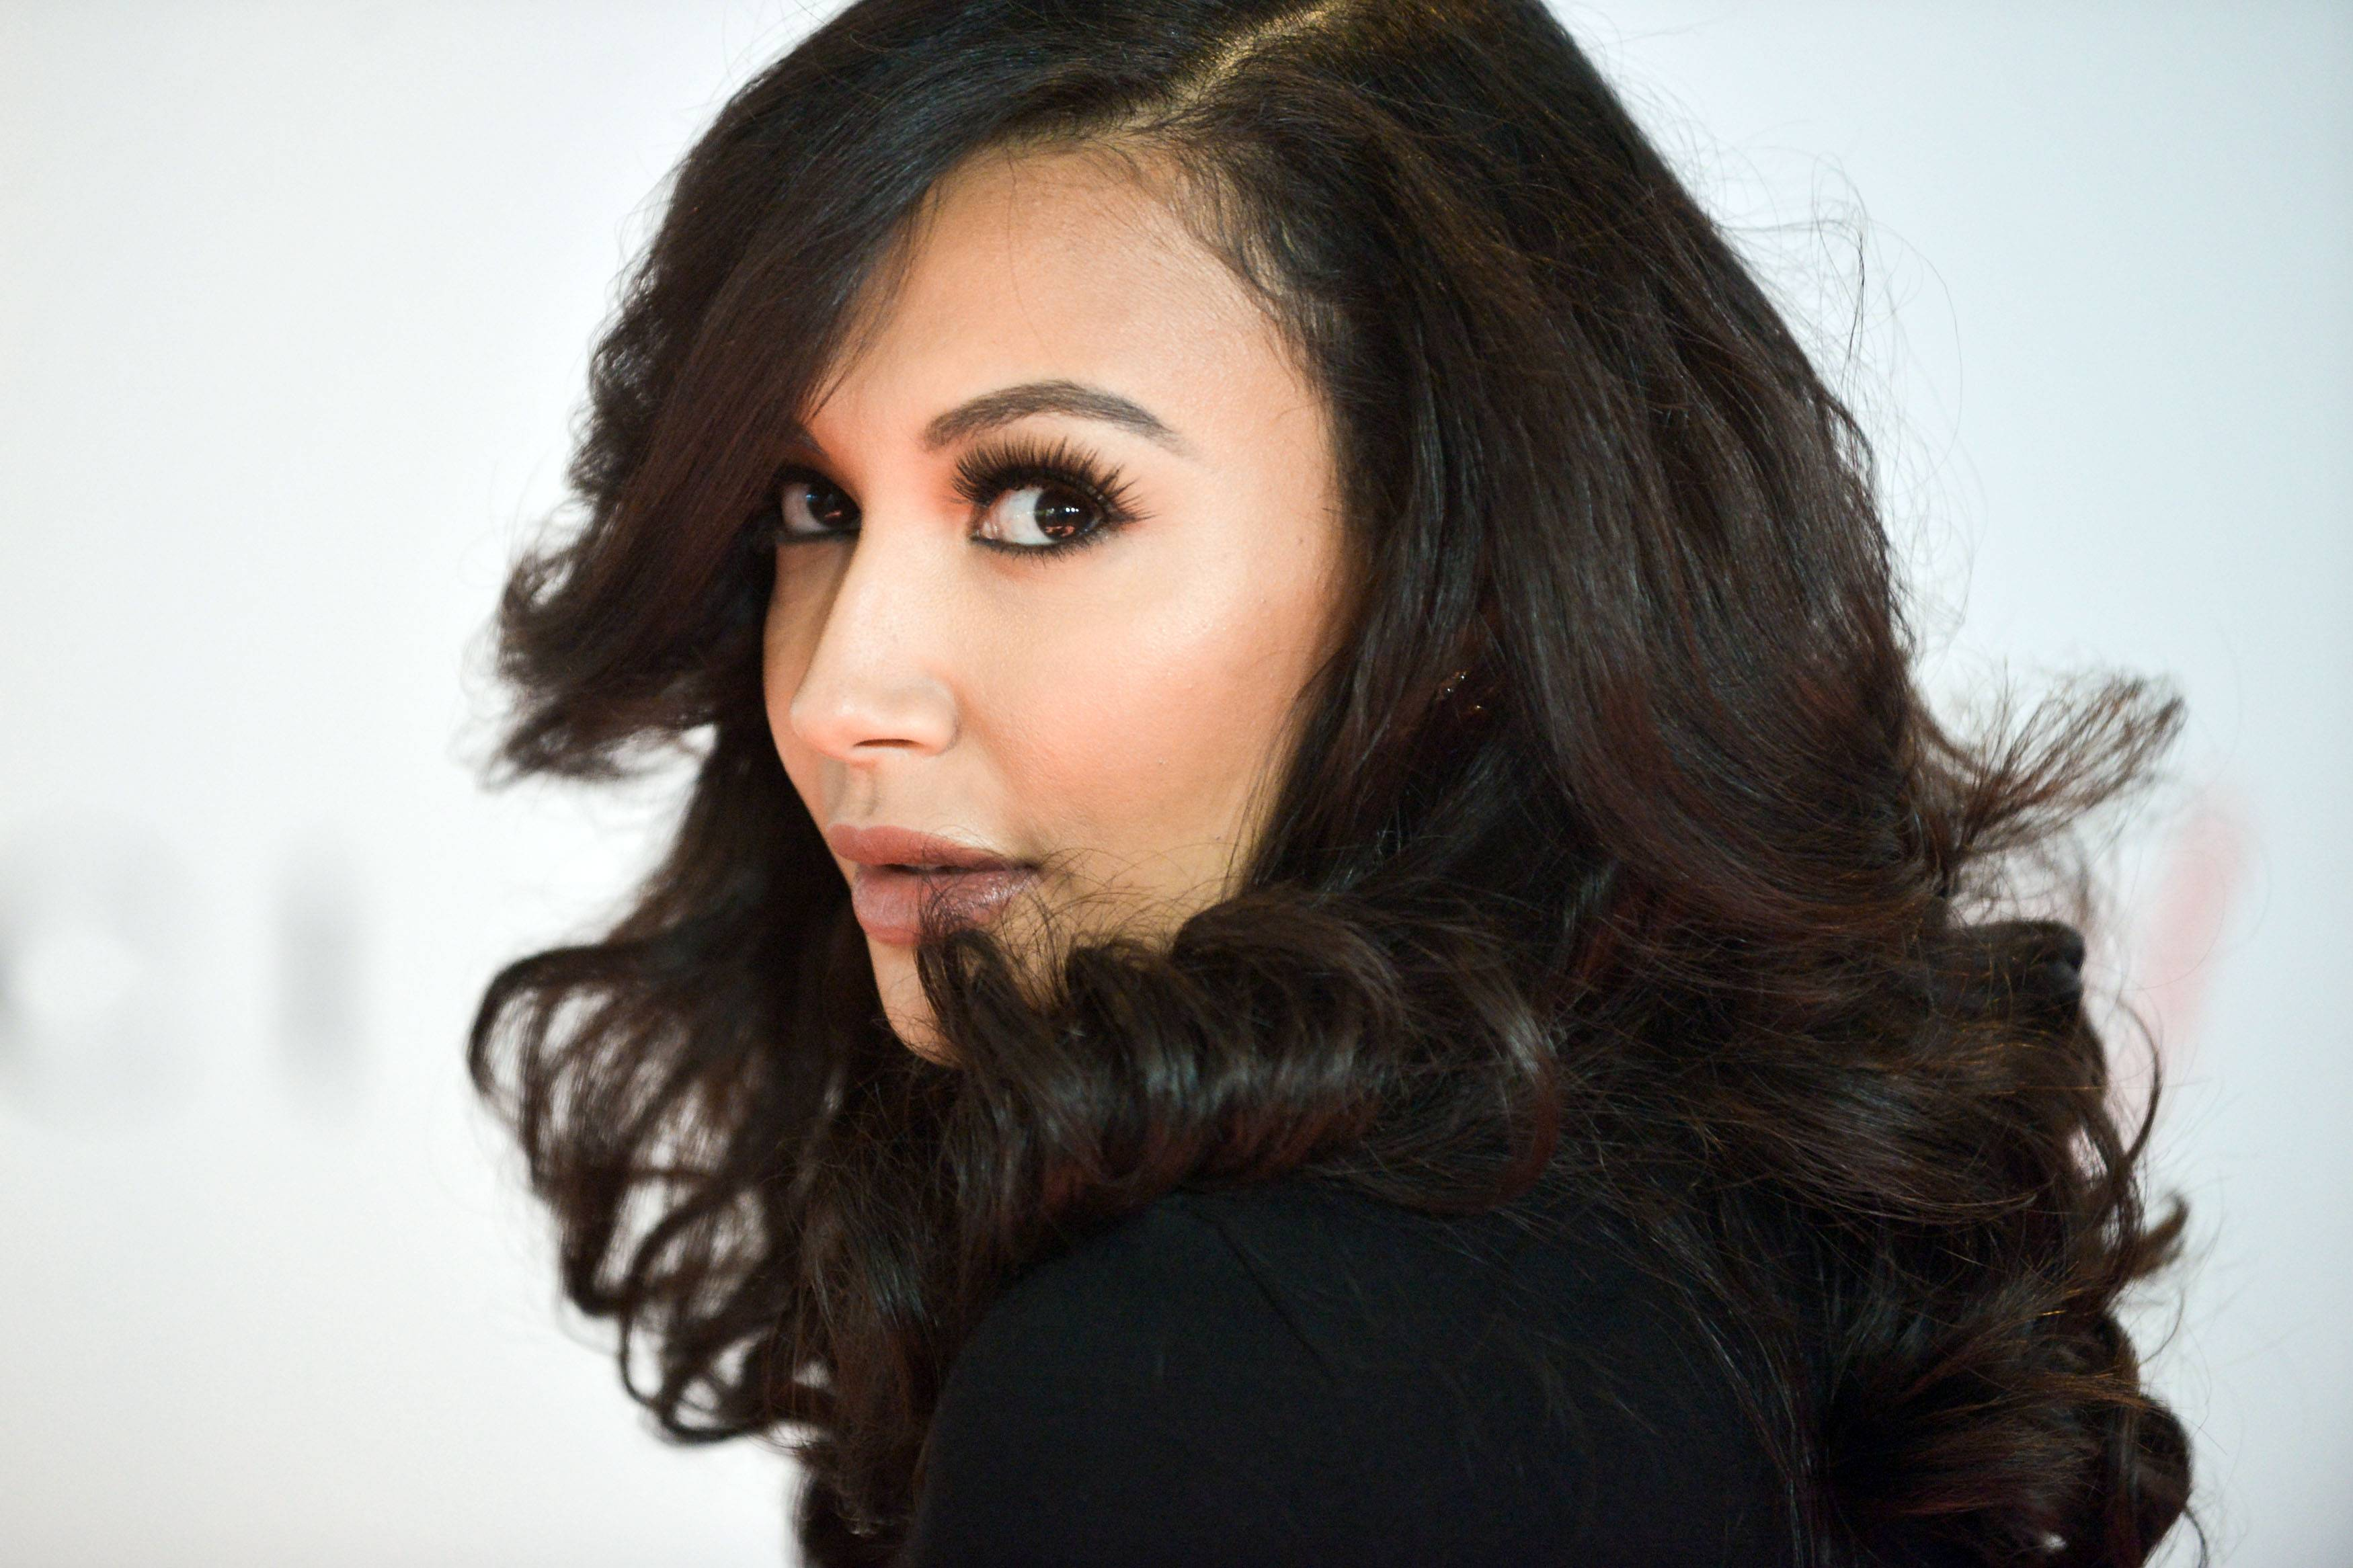 Naya Rivera is still a Gleek. FOX Network said in a statement to the AP on Saturday that there's no truth to rumors that Rivera had been fired from the show. Rivera plays the character Santana Lopez on the popular musical drama.